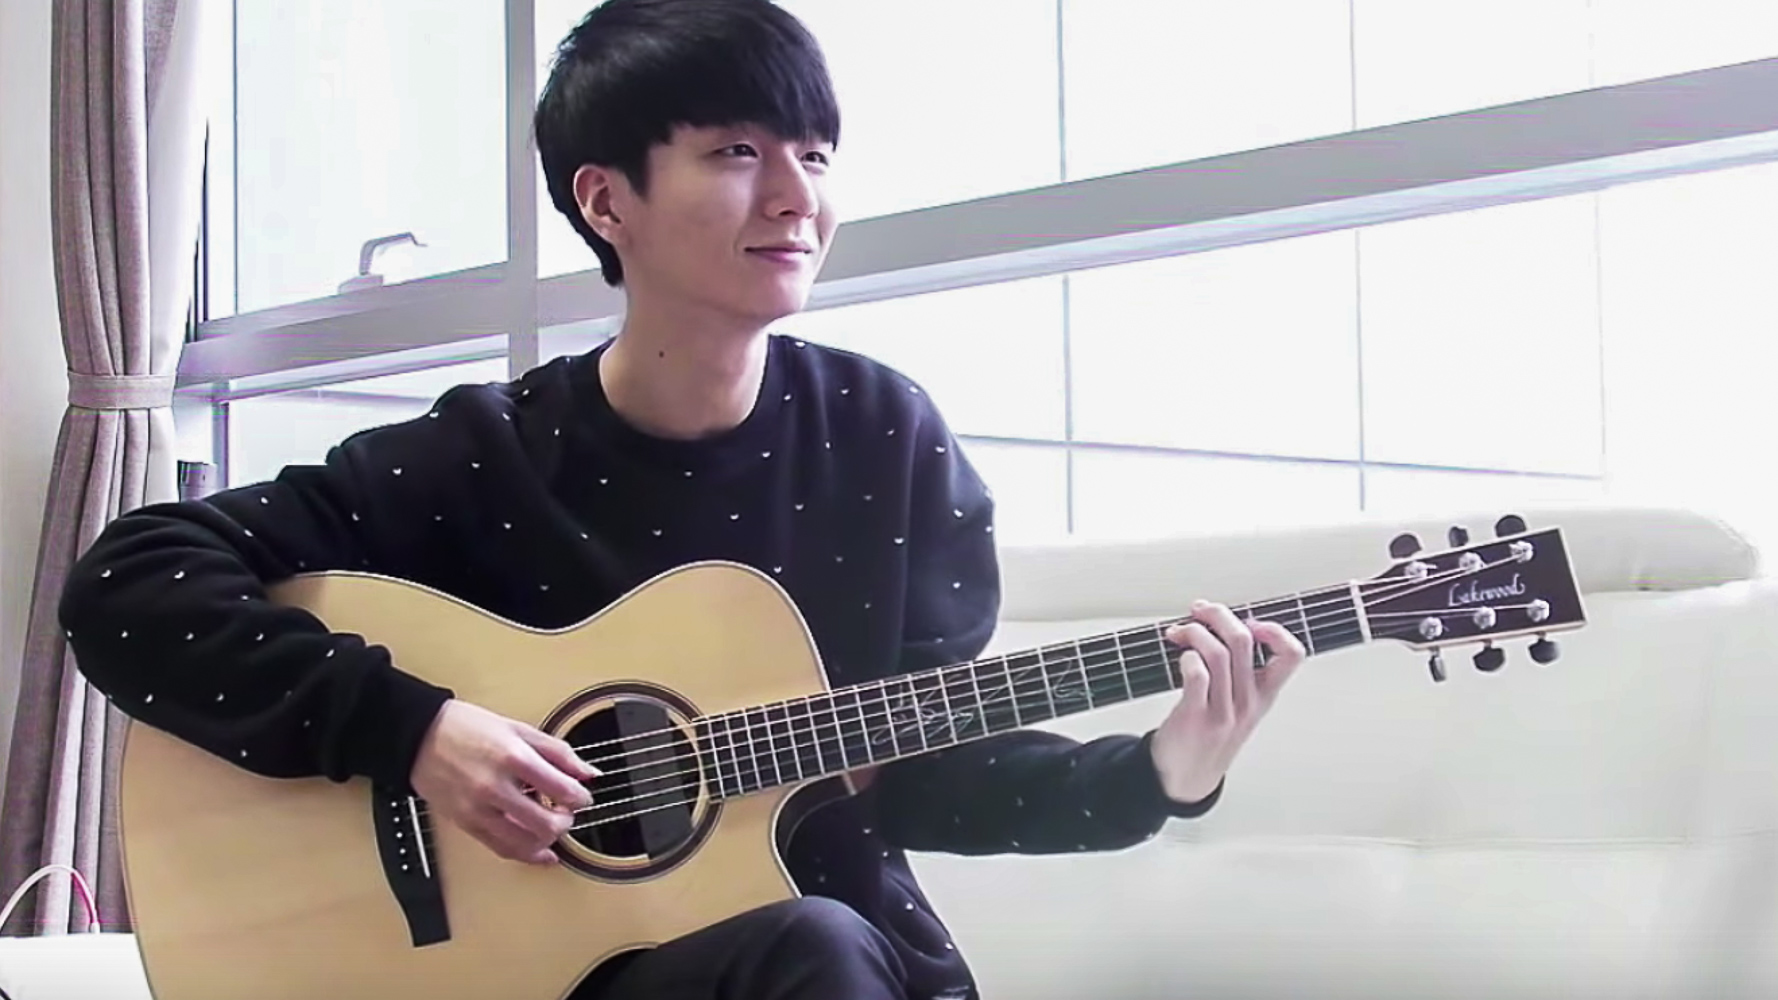 Sungha Jung: Growing up on YouTube